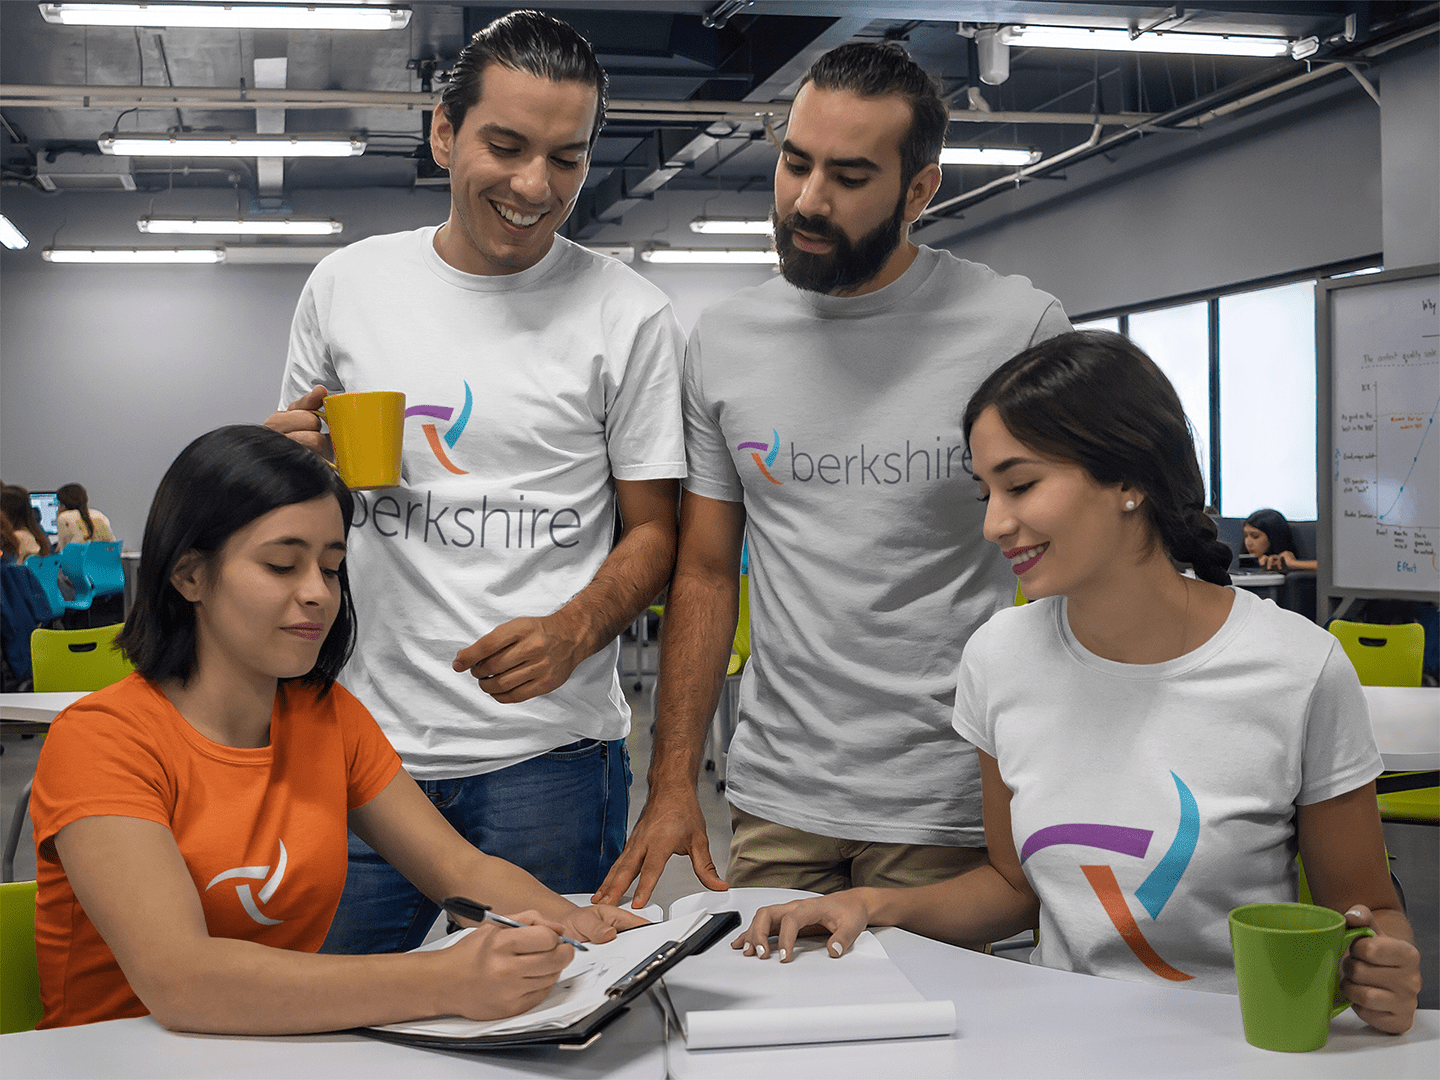 group-of-four-coworkers-talking-while-wearing-different-tshirts-mockup-a15650